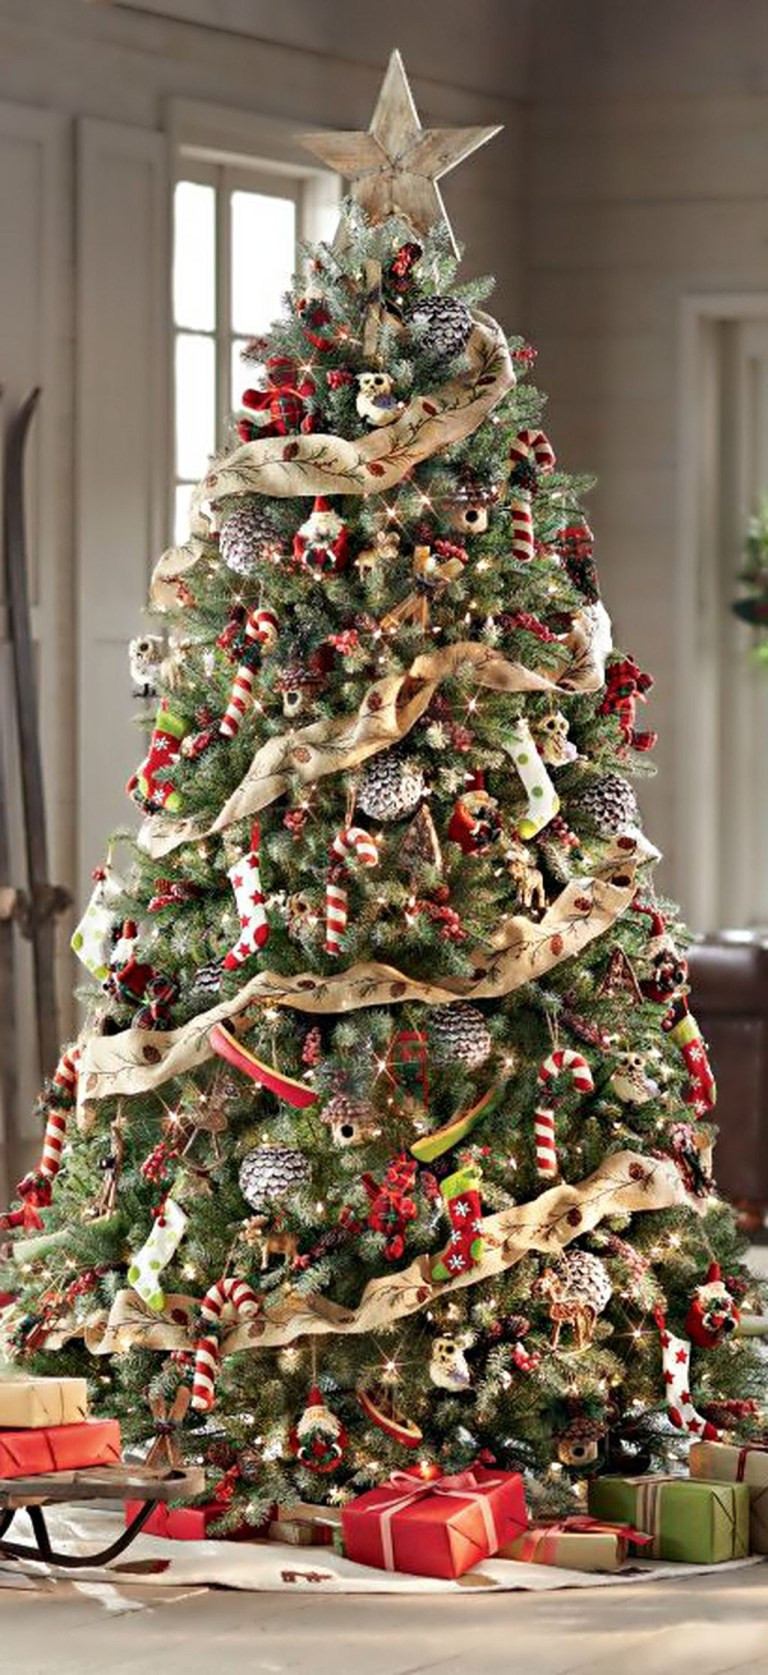 Luxury Red and Gold Christmas Tree Decoration Ideas that are Christmas Tree and Decorations Of Delightful 50 Pictures Christmas Tree and Decorations